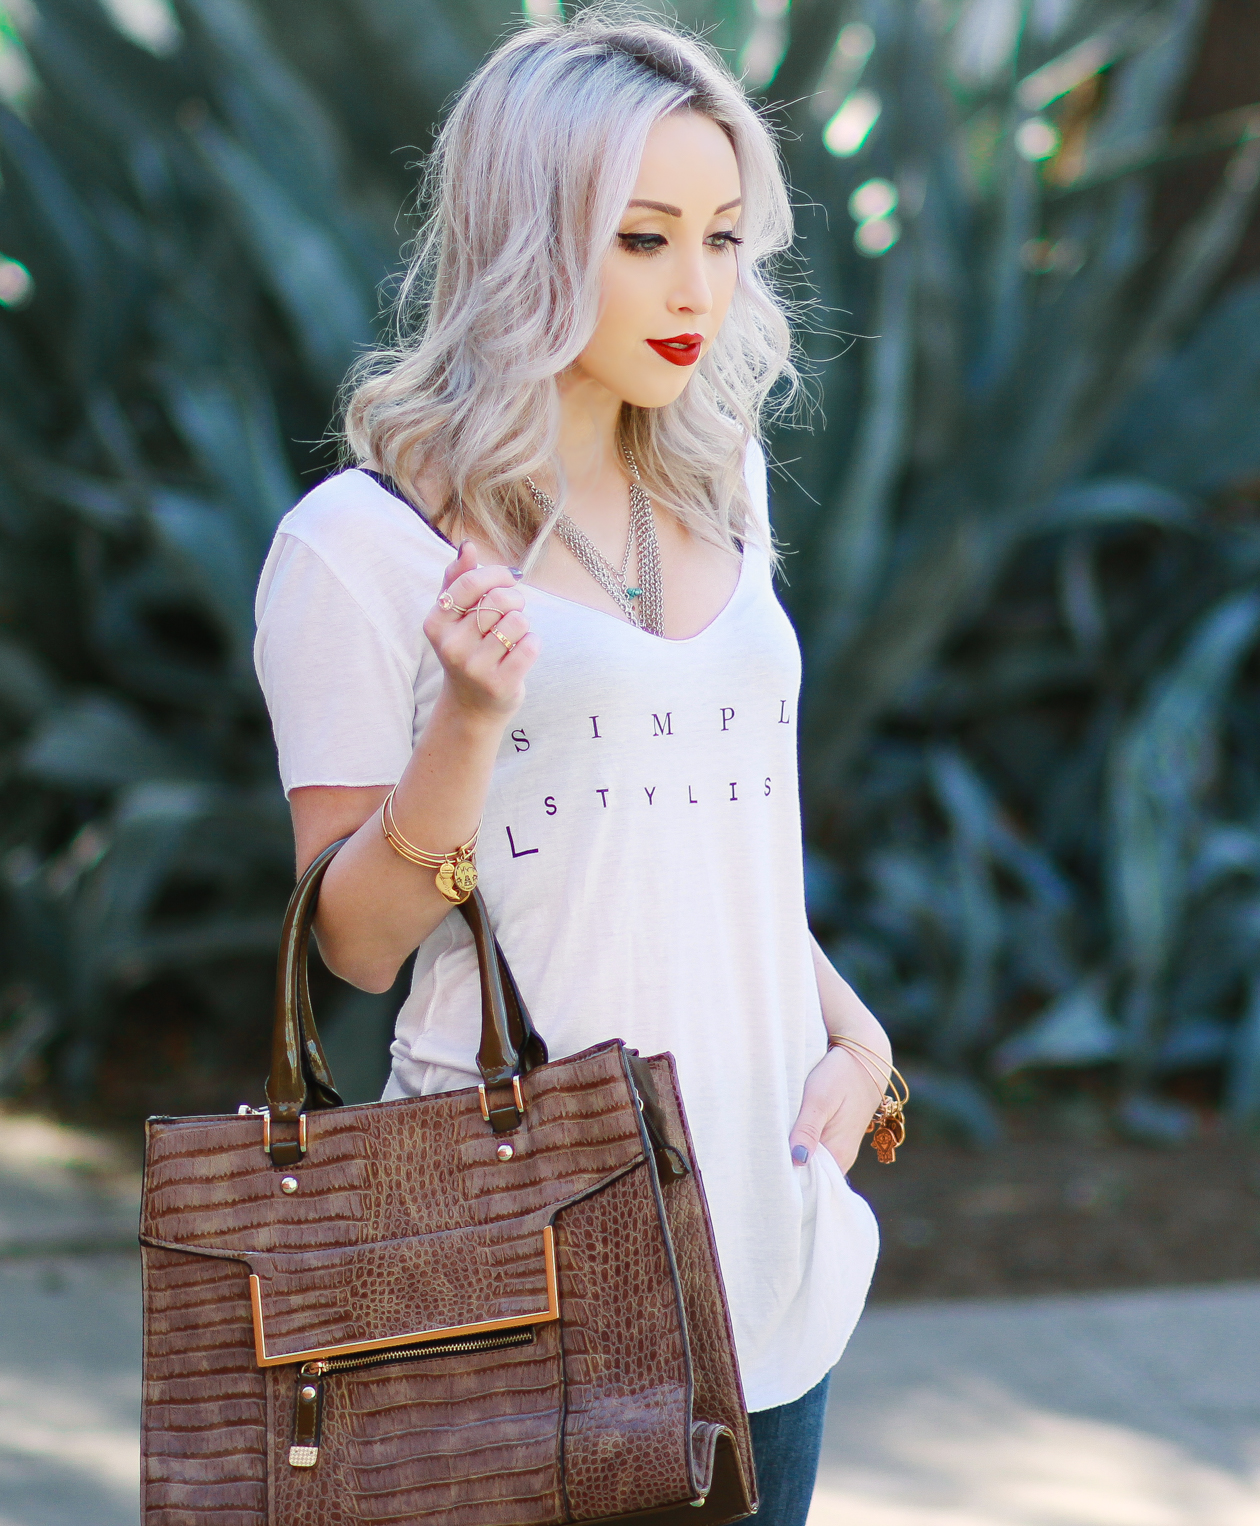 Simply Stylish with @anglclothing | Casual Style with Red Heels | BlondieintheCity.com